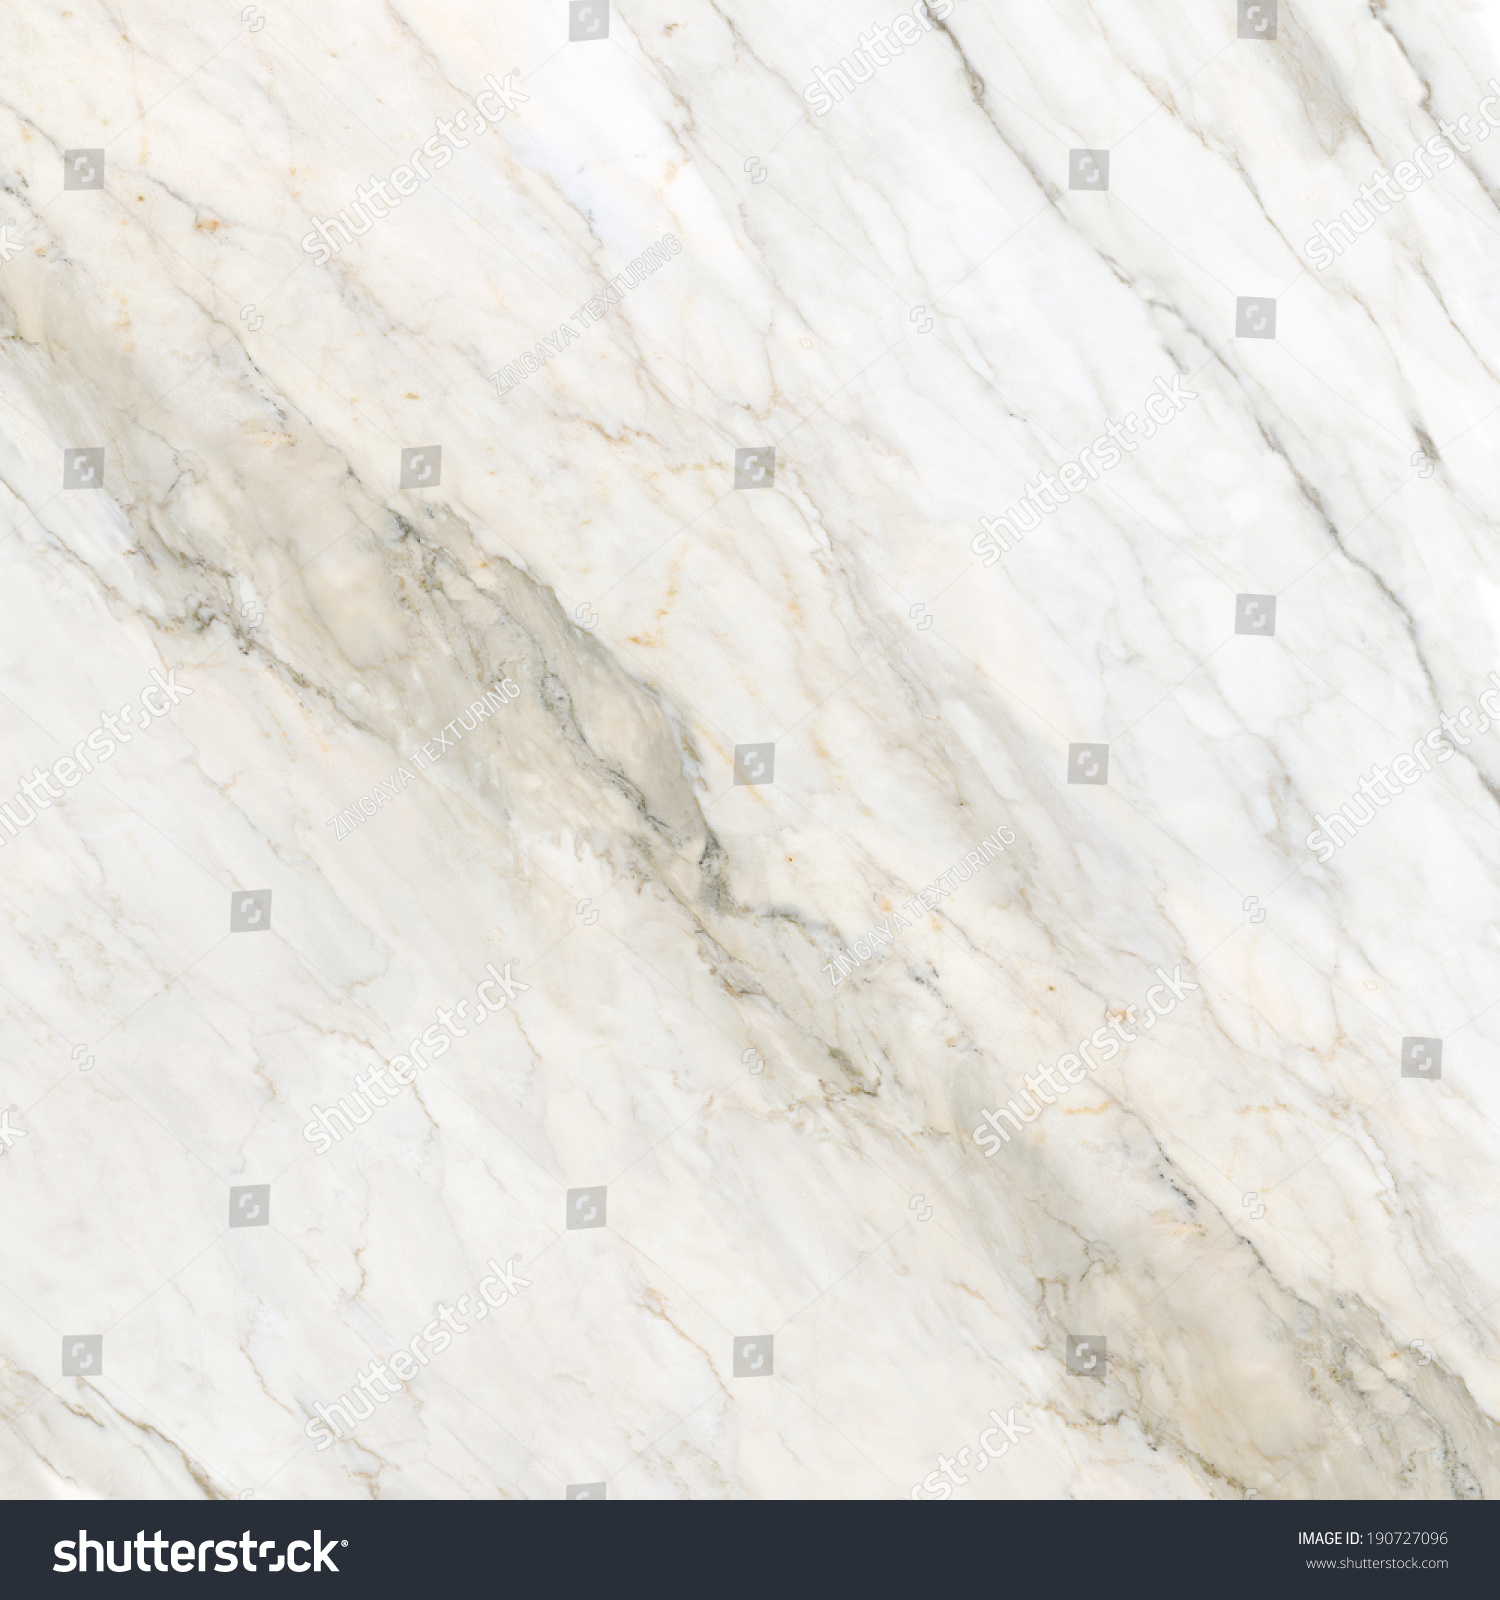 Marble Stone Background : Marble texture stone cream background quality stock photo